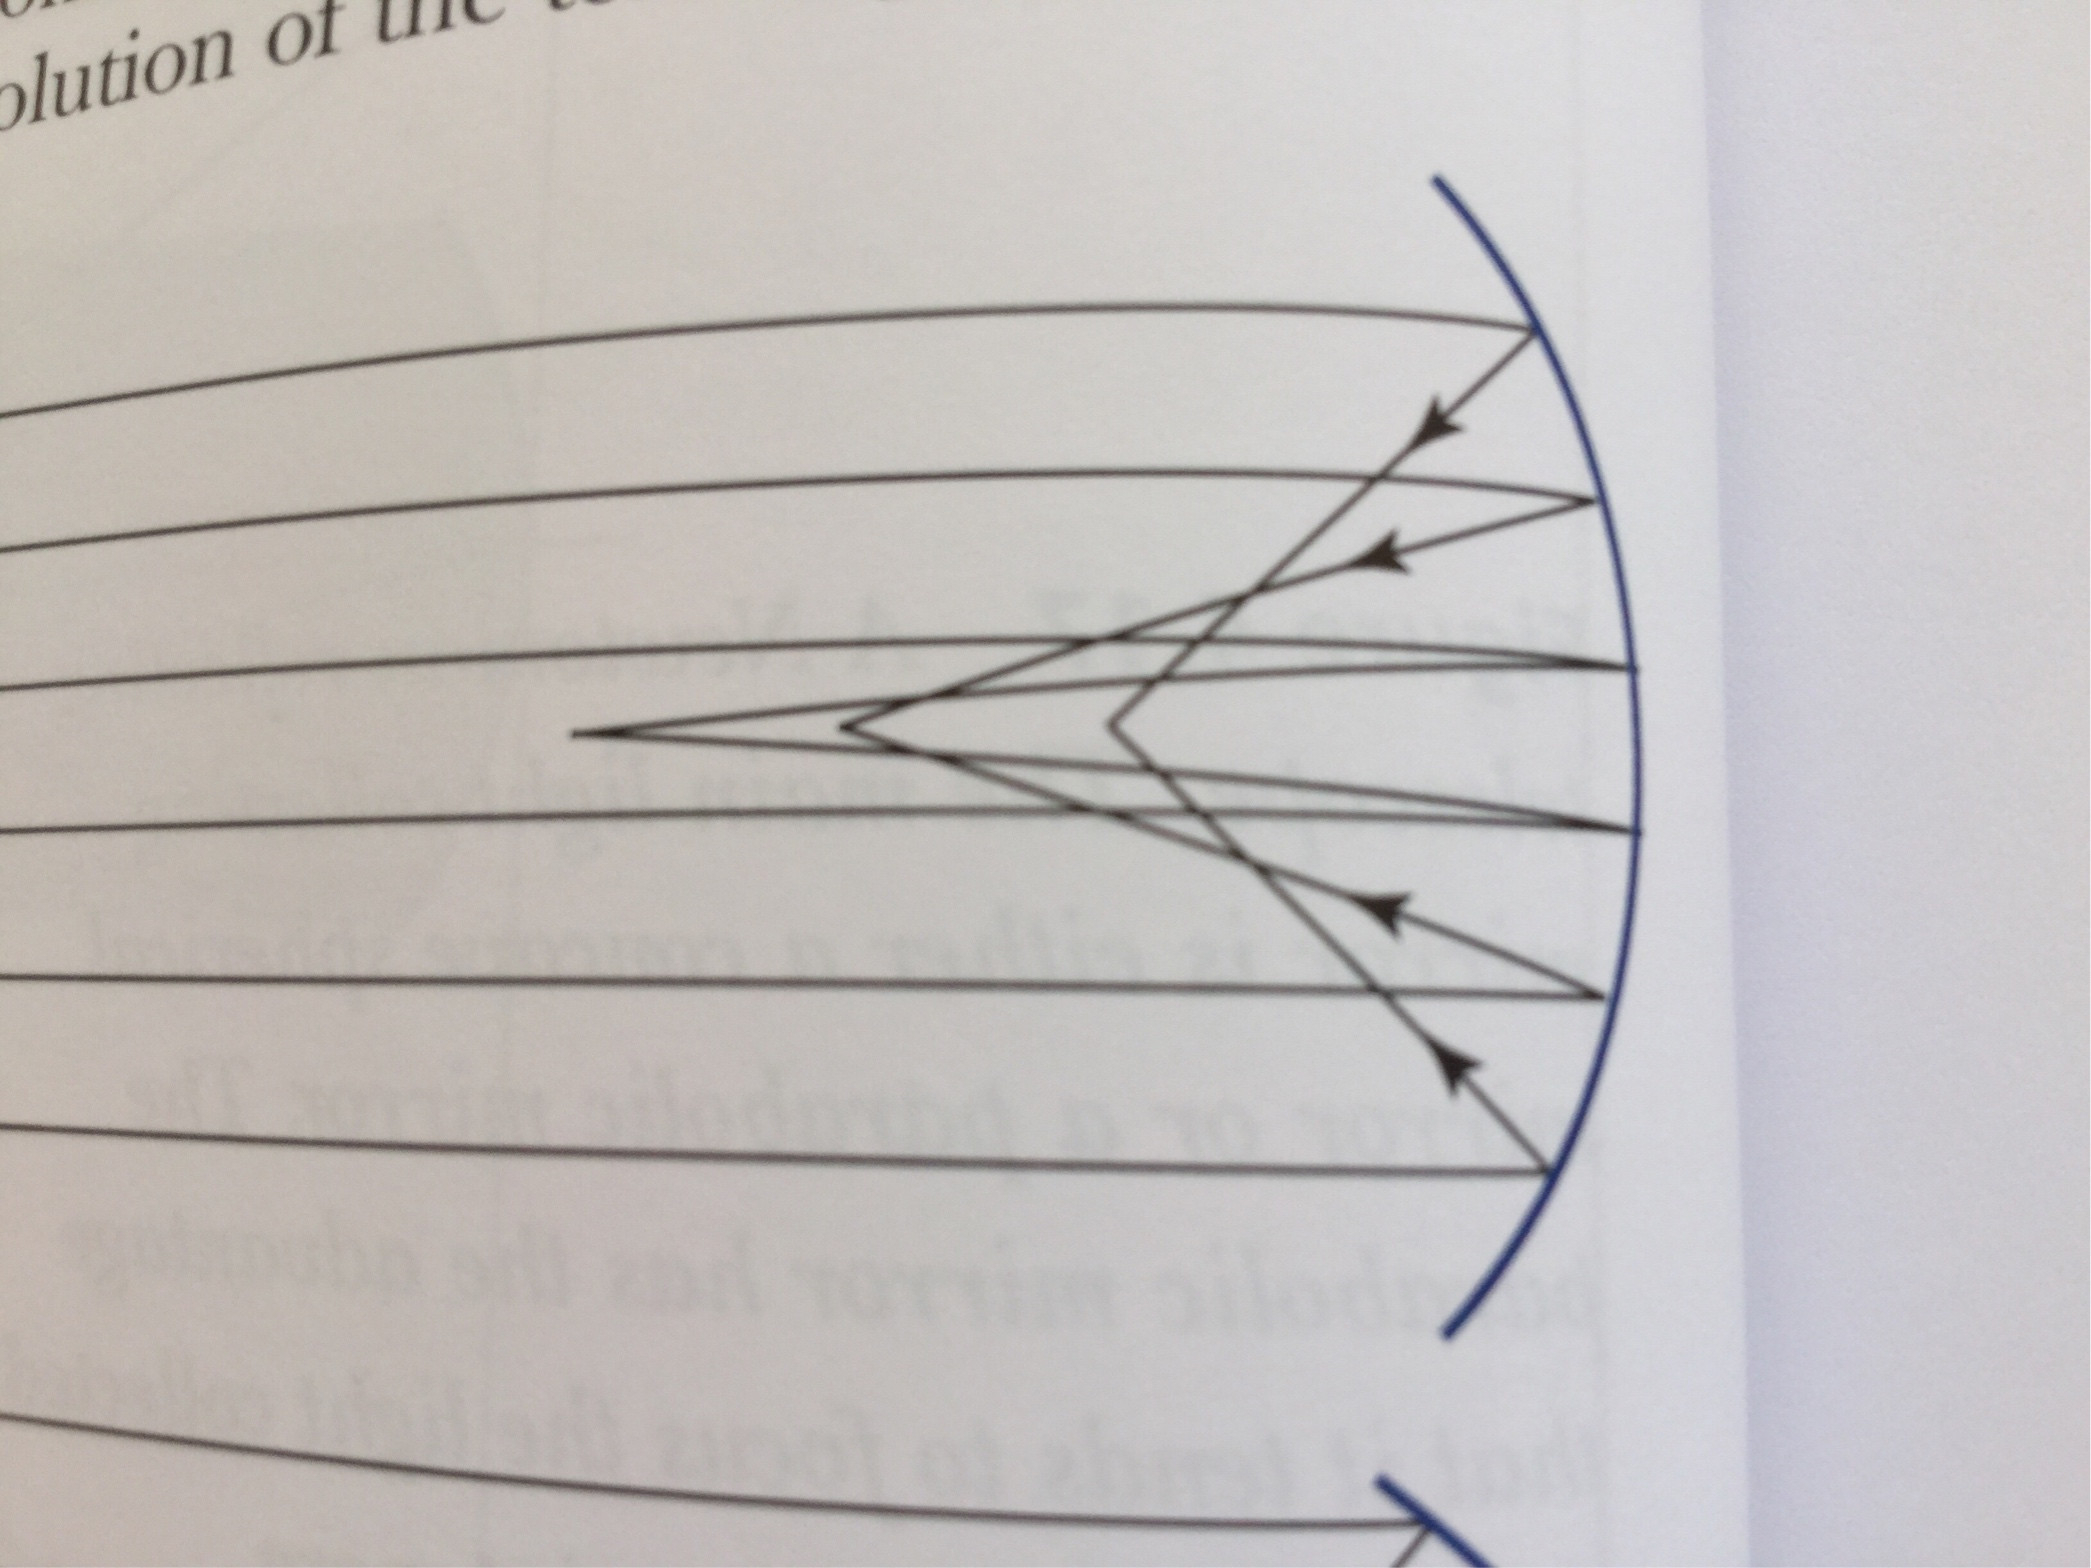 Concave Mirror Diagram Does Reflected Light From A Concave Mirror Pass Through A Single